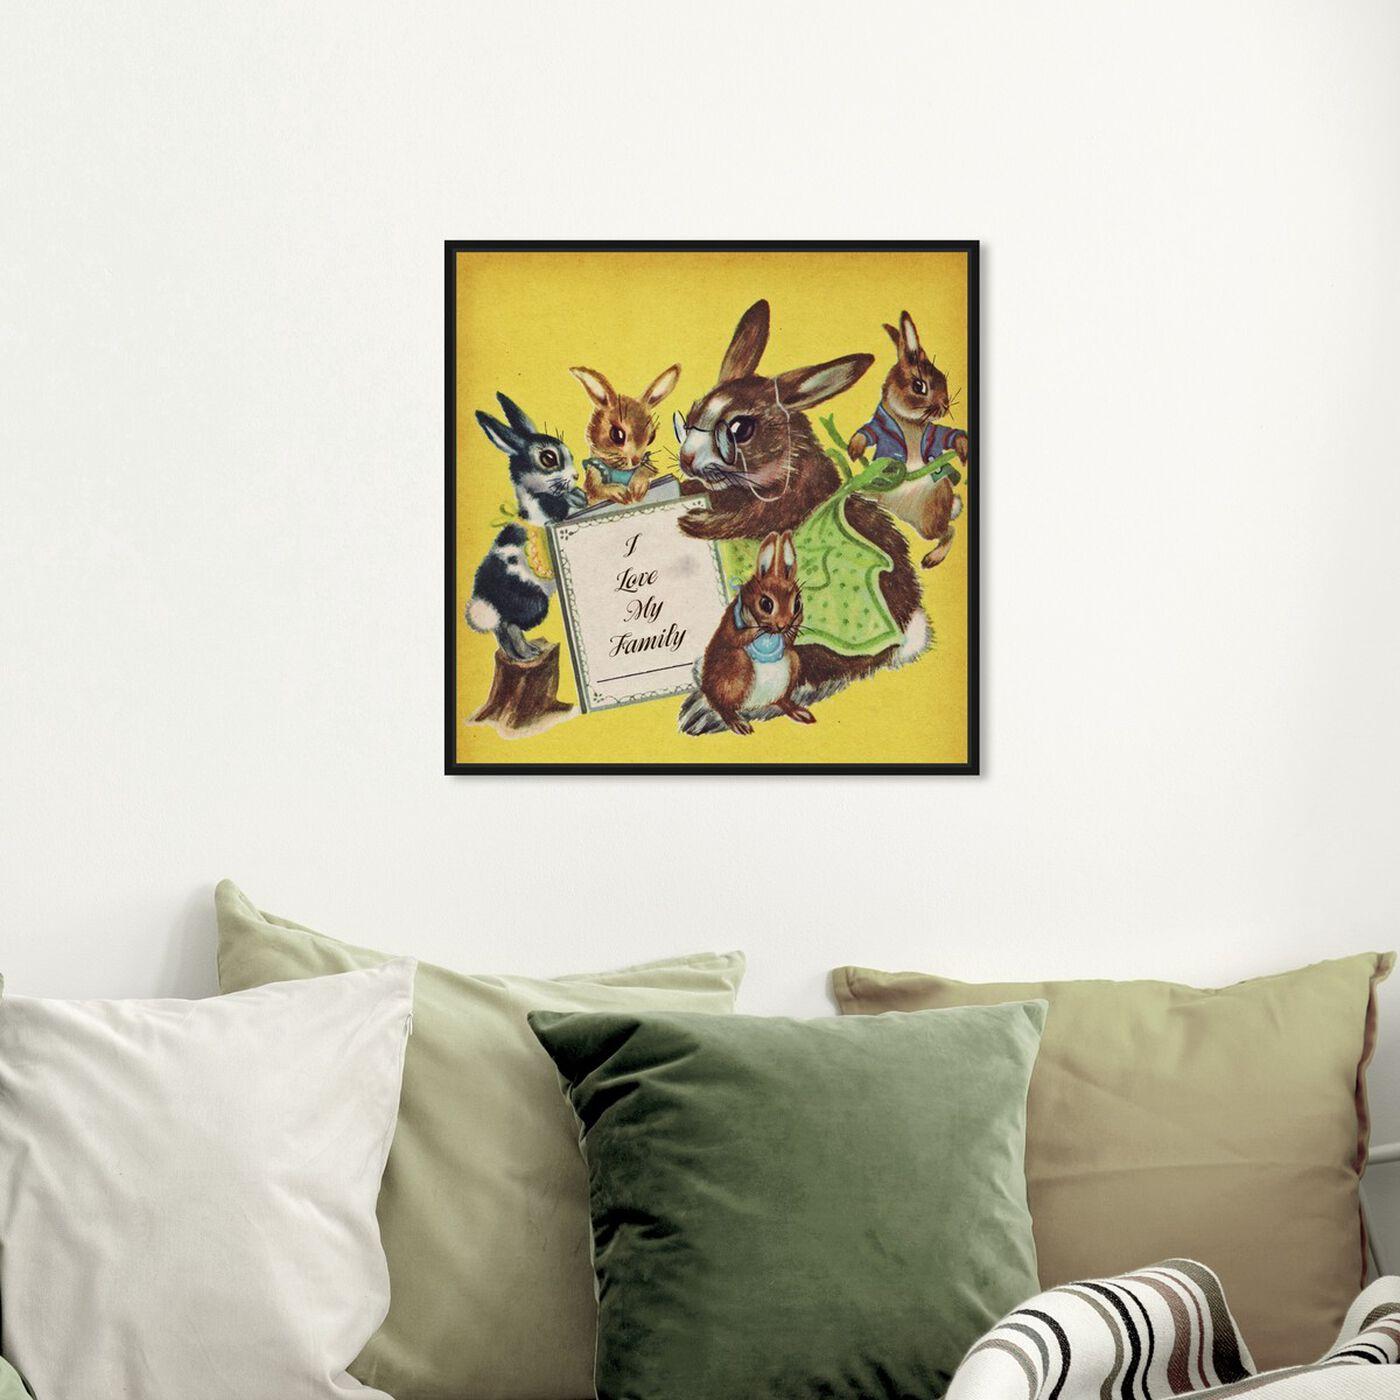 Hanging view of I Love My Family featuring animals and farm animals art.